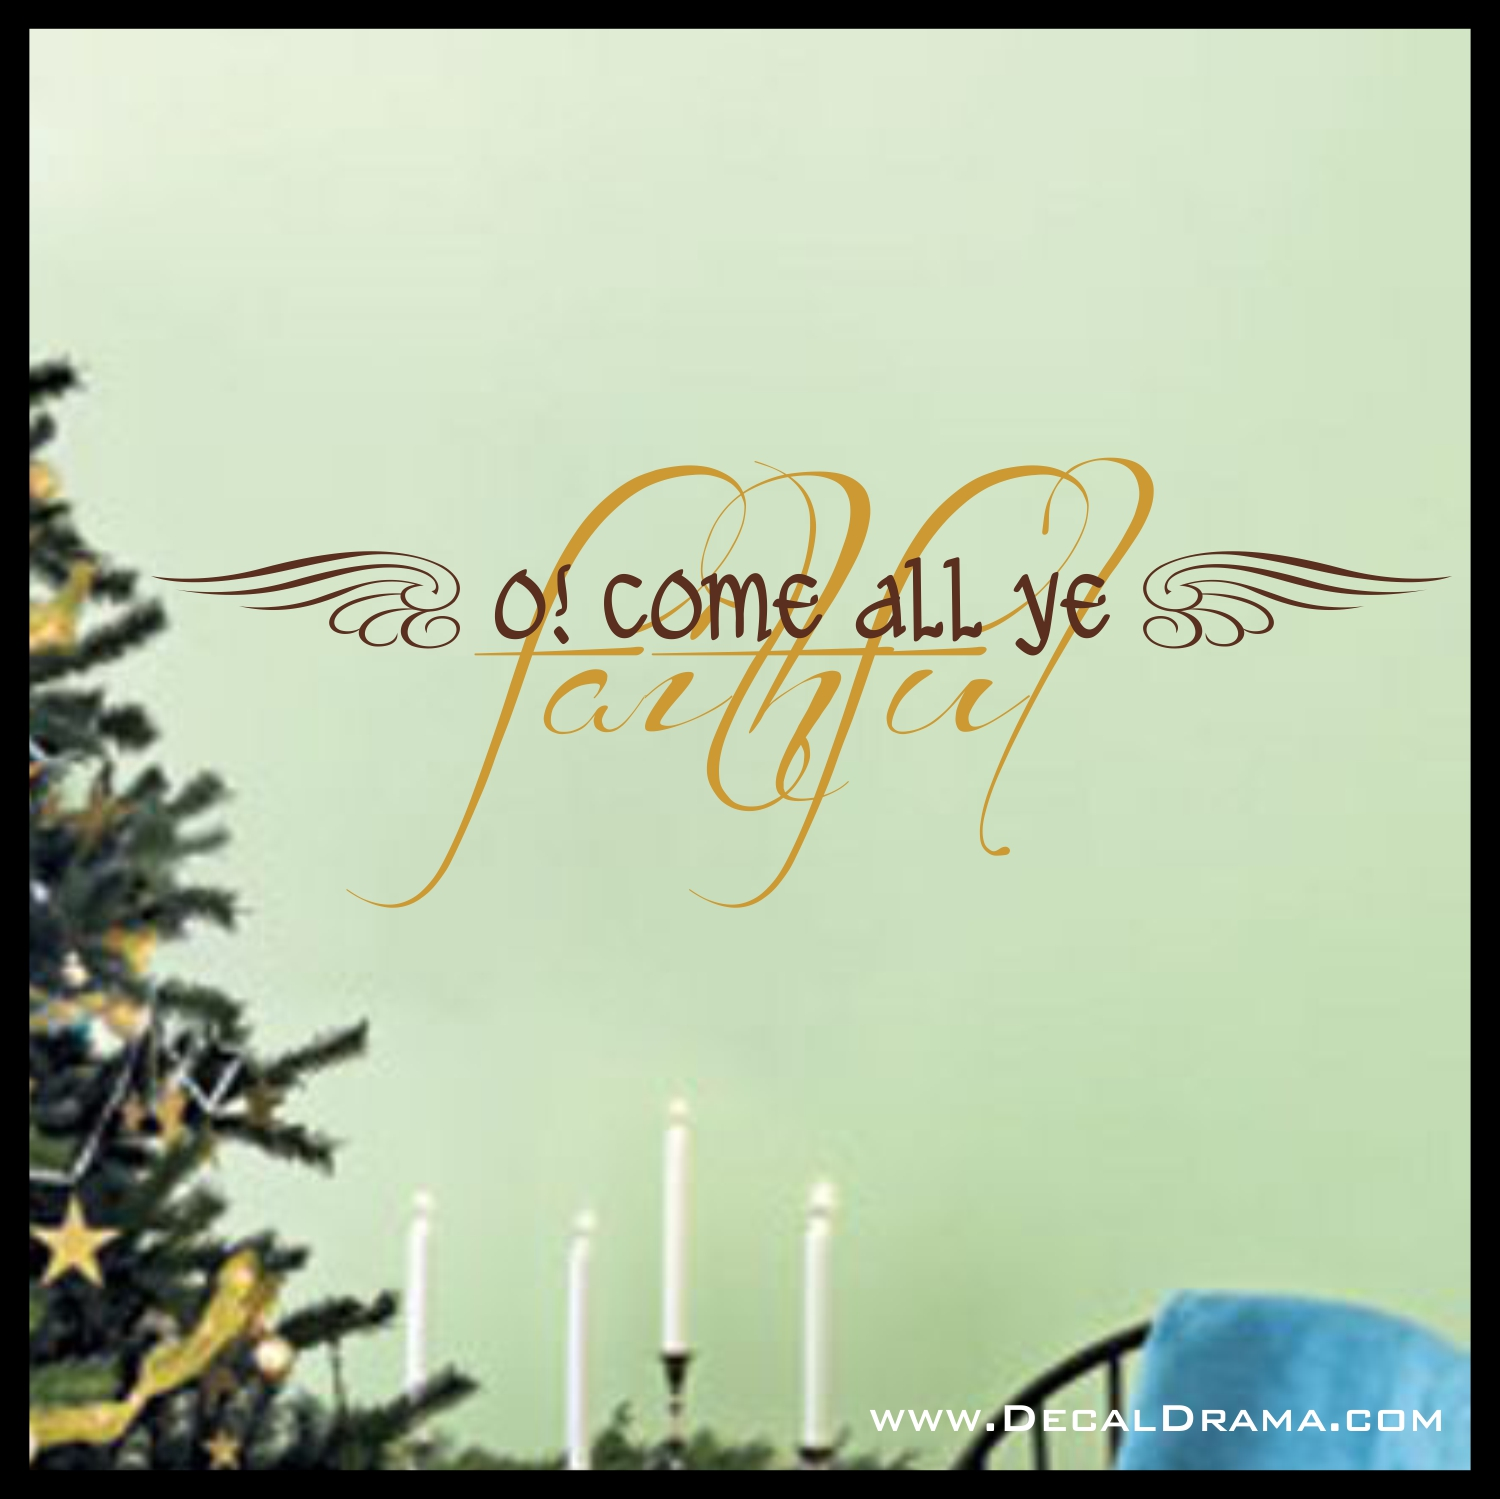 Christmas Vinyl Decals.Christmas Vinyl Wall Decal O Come All Ye Faithful From Decal Drama